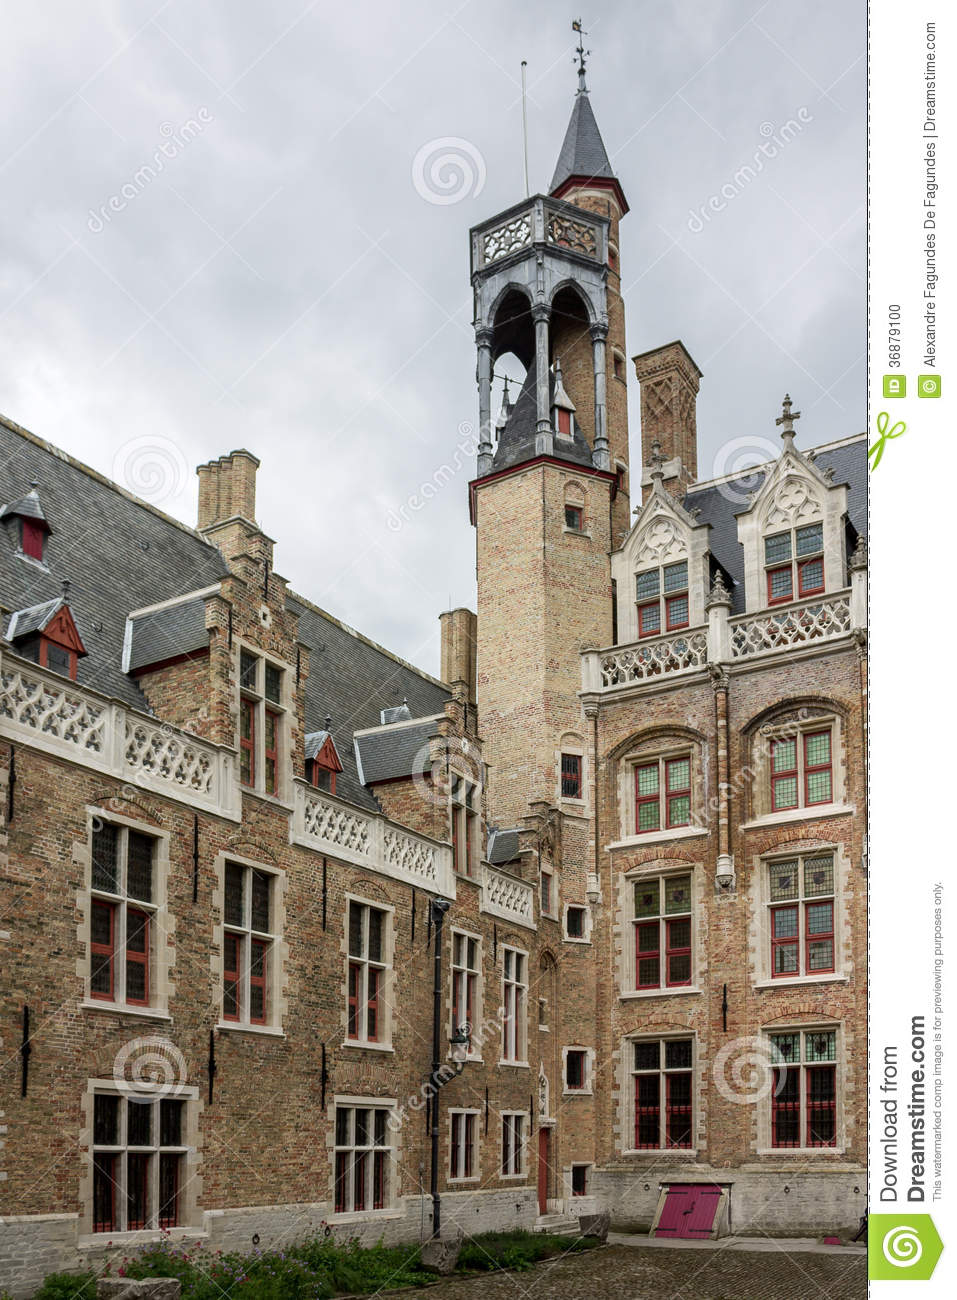 Download Bruges Belgio fotografia stock. Immagine di castello - 36879100